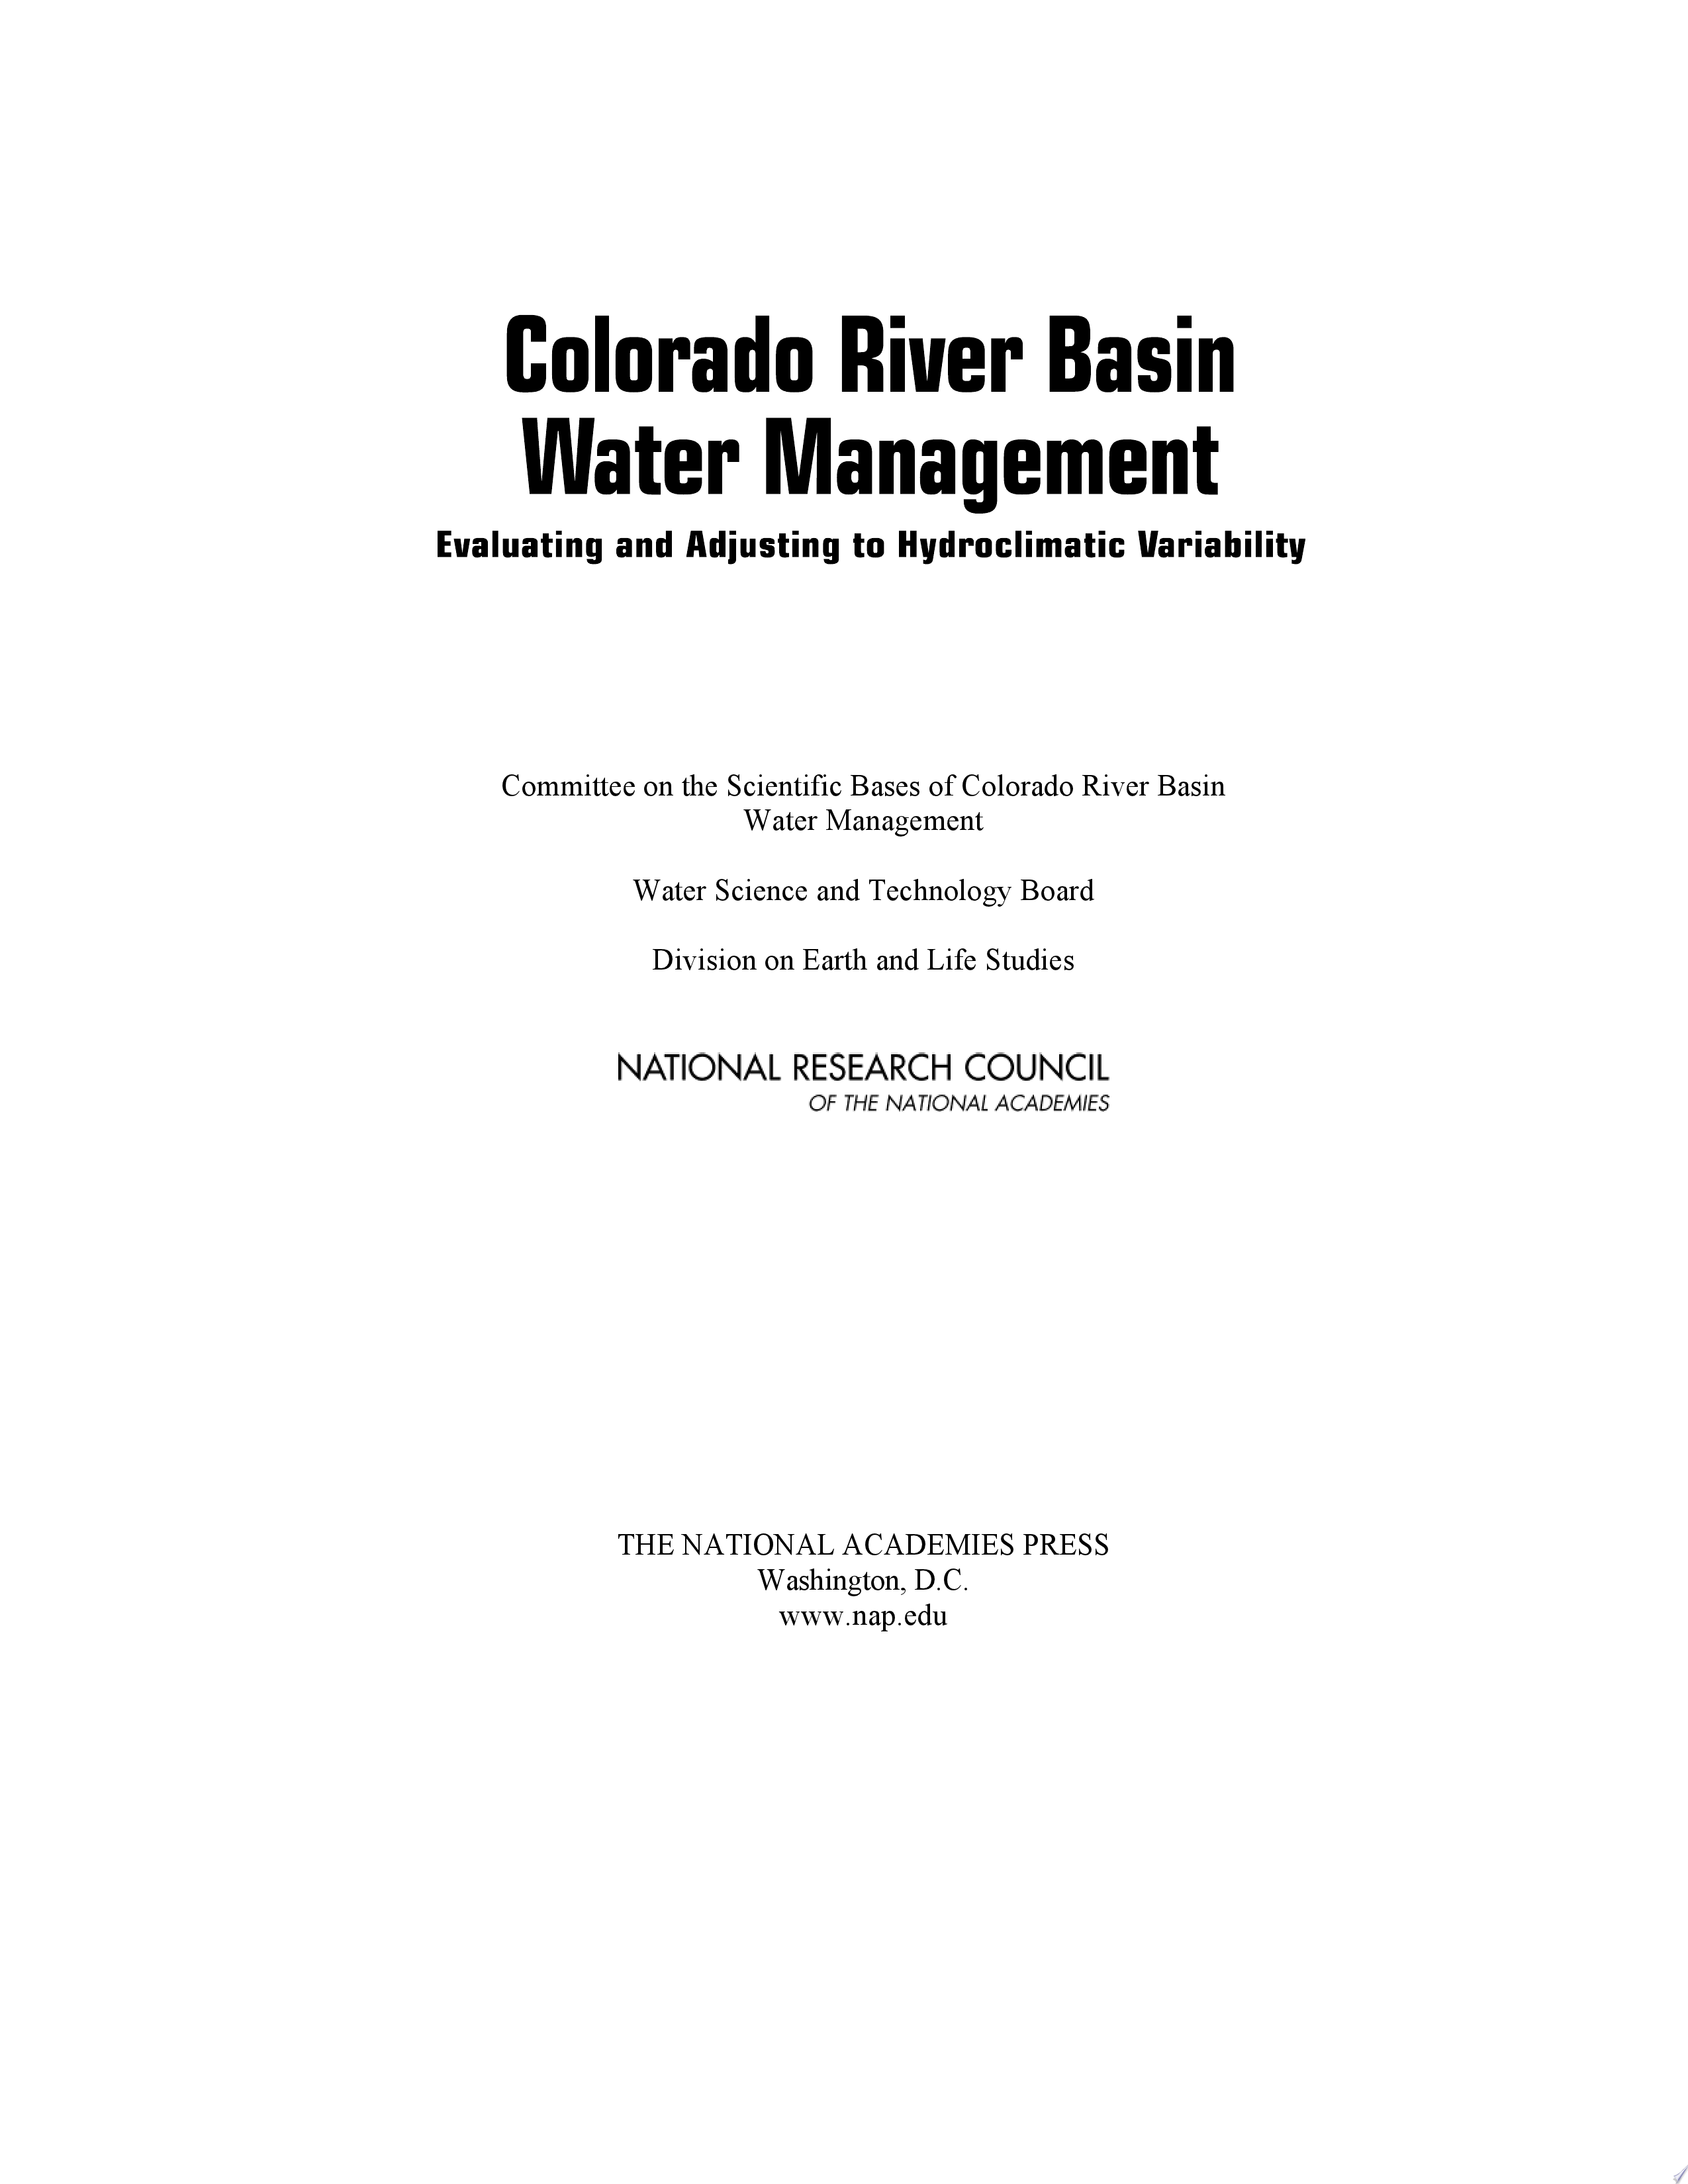 Colorado River Basin Water Management